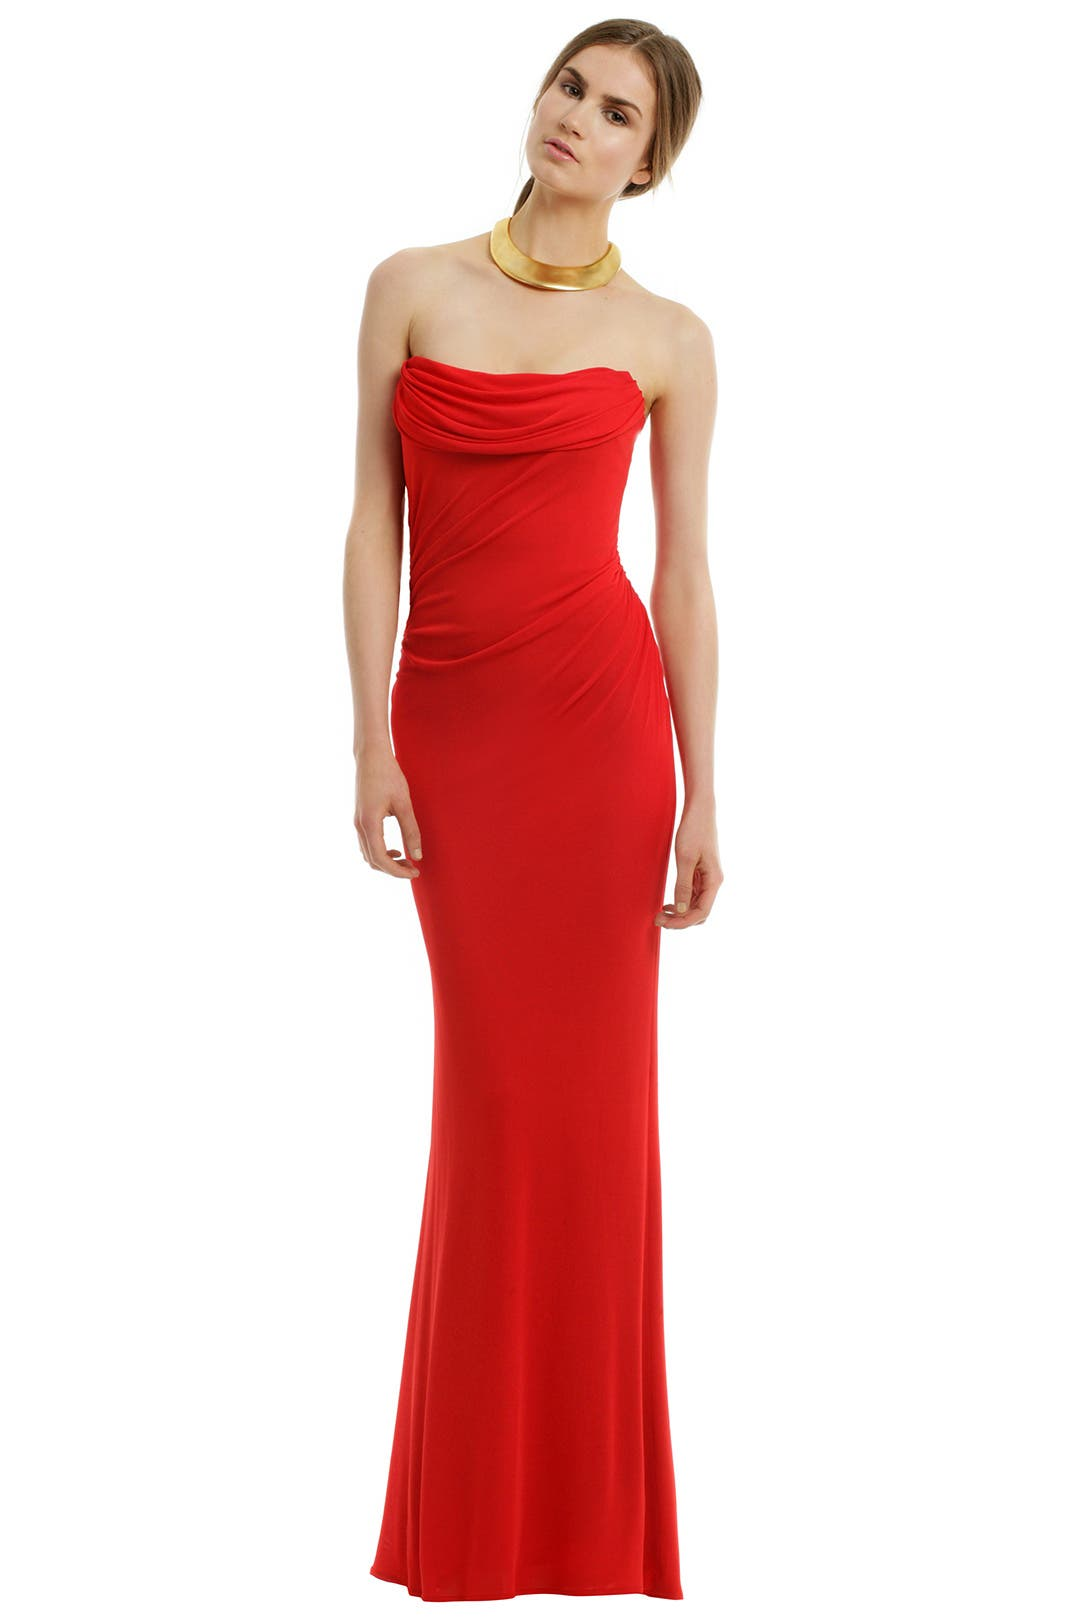 Phoenix Rising Gown by David Meister for $80 | Rent the Runway